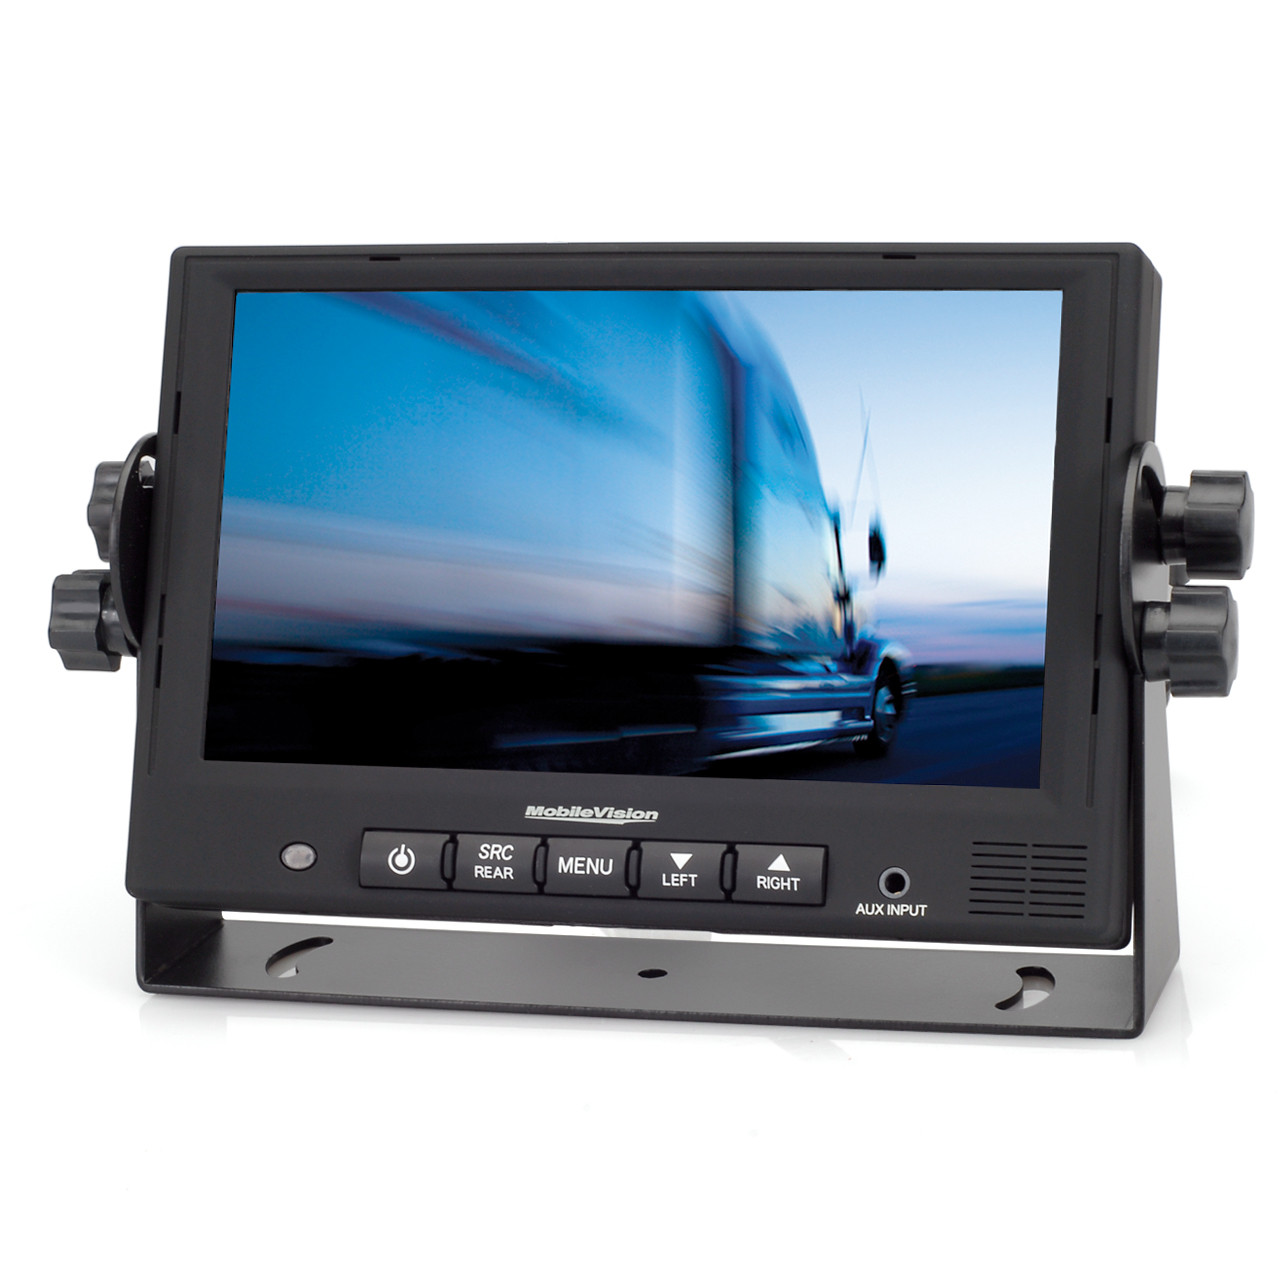 medium resolution of mobilevision m130c 7 color lcd safety camera monitor front view